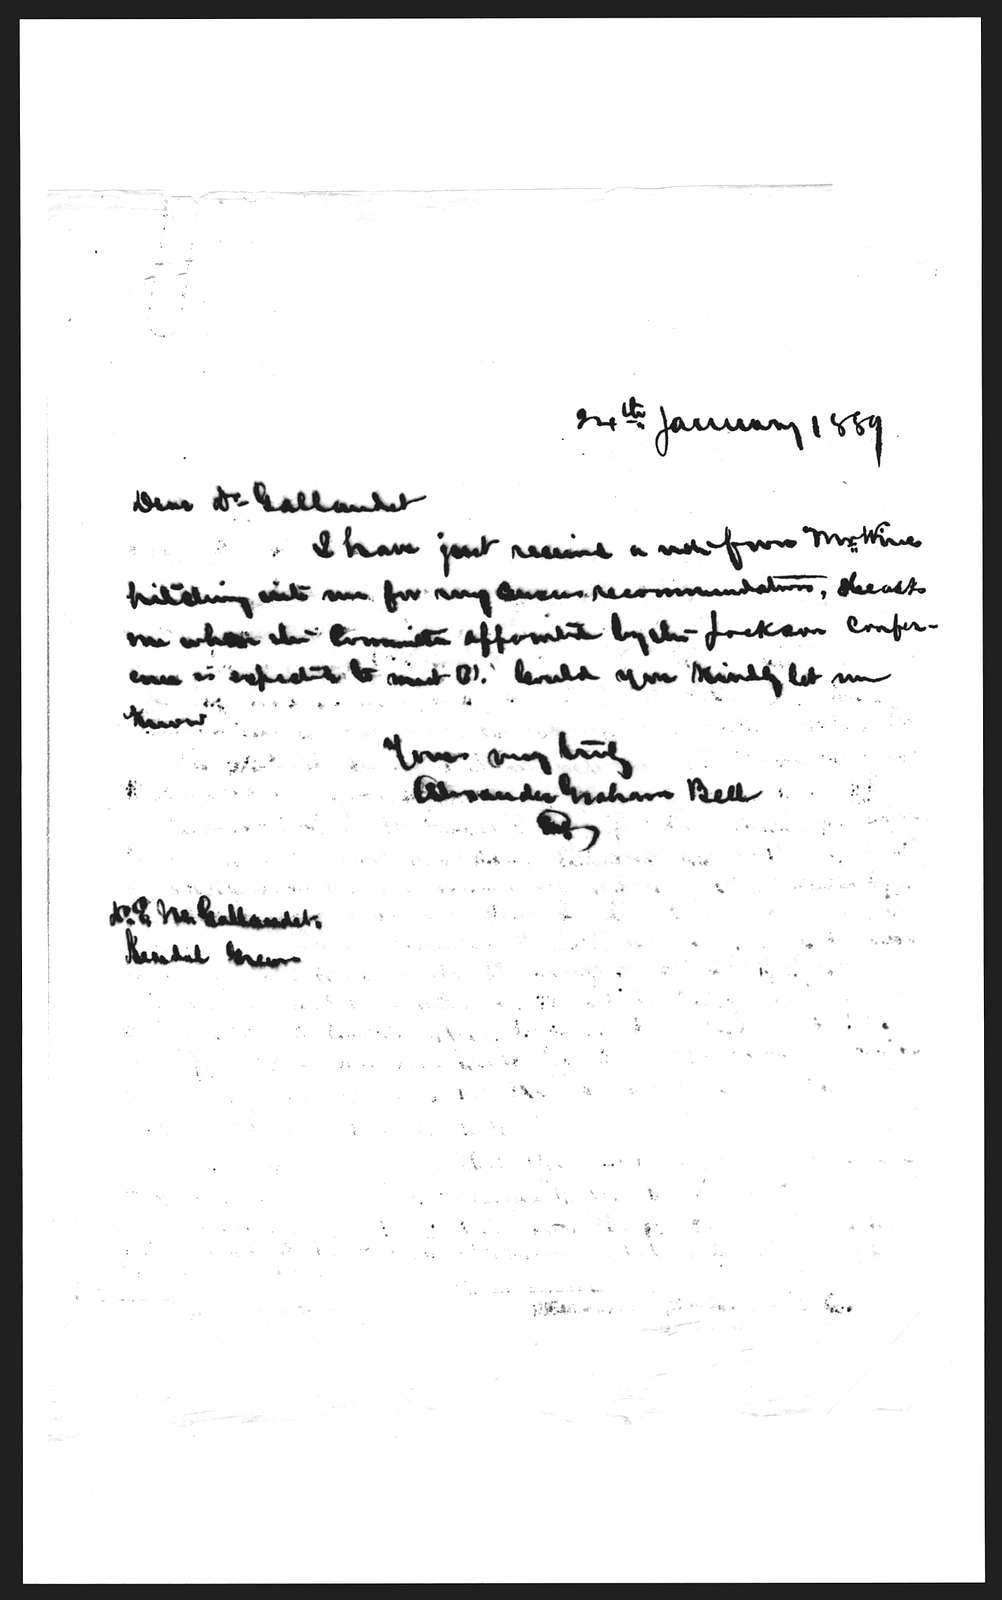 Letter from Alexander Graham Bell to Edward M. Gallaudet, January 24, 1889